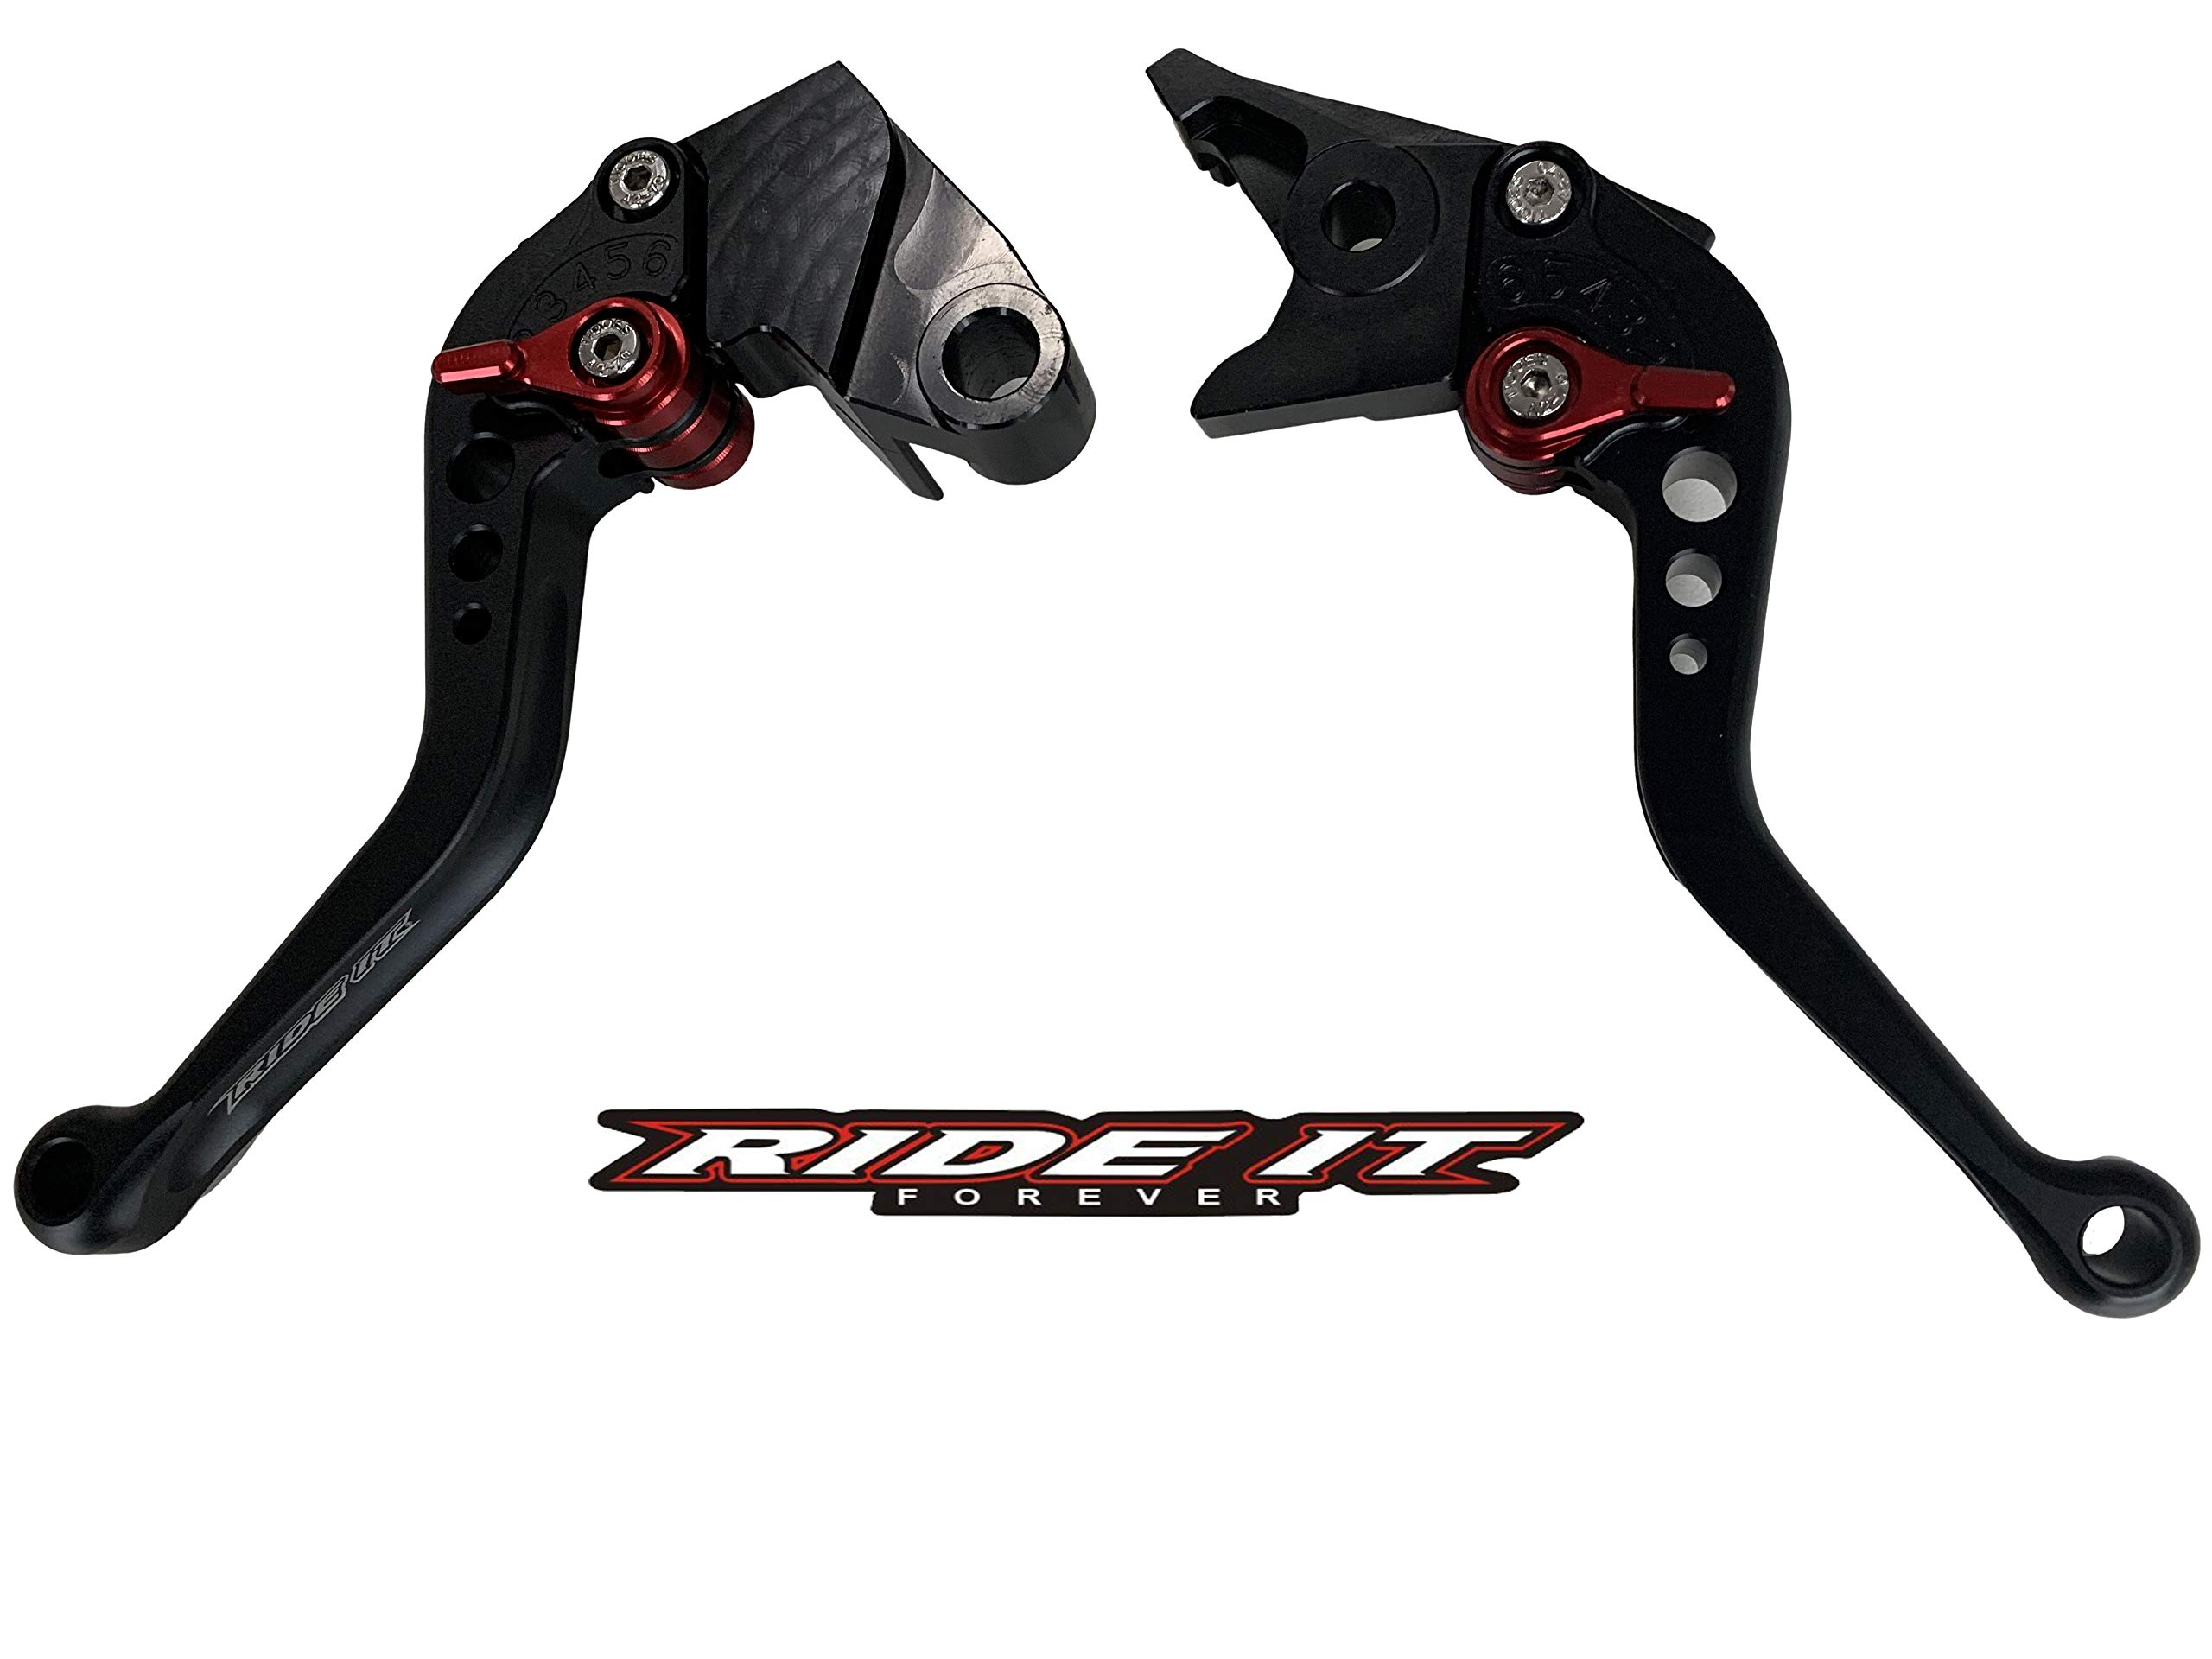 Short Brake and Clutch Levers for KAWASAKI ZX6R 636 2000-2004,Z1000 2003-2006,Versys1000 12-14,ZX9R 2000-2003,ZX10R 2004-2005,ZX12R 2000-2005,ZZR 600 2005-2009,ZX12R 2002-2005